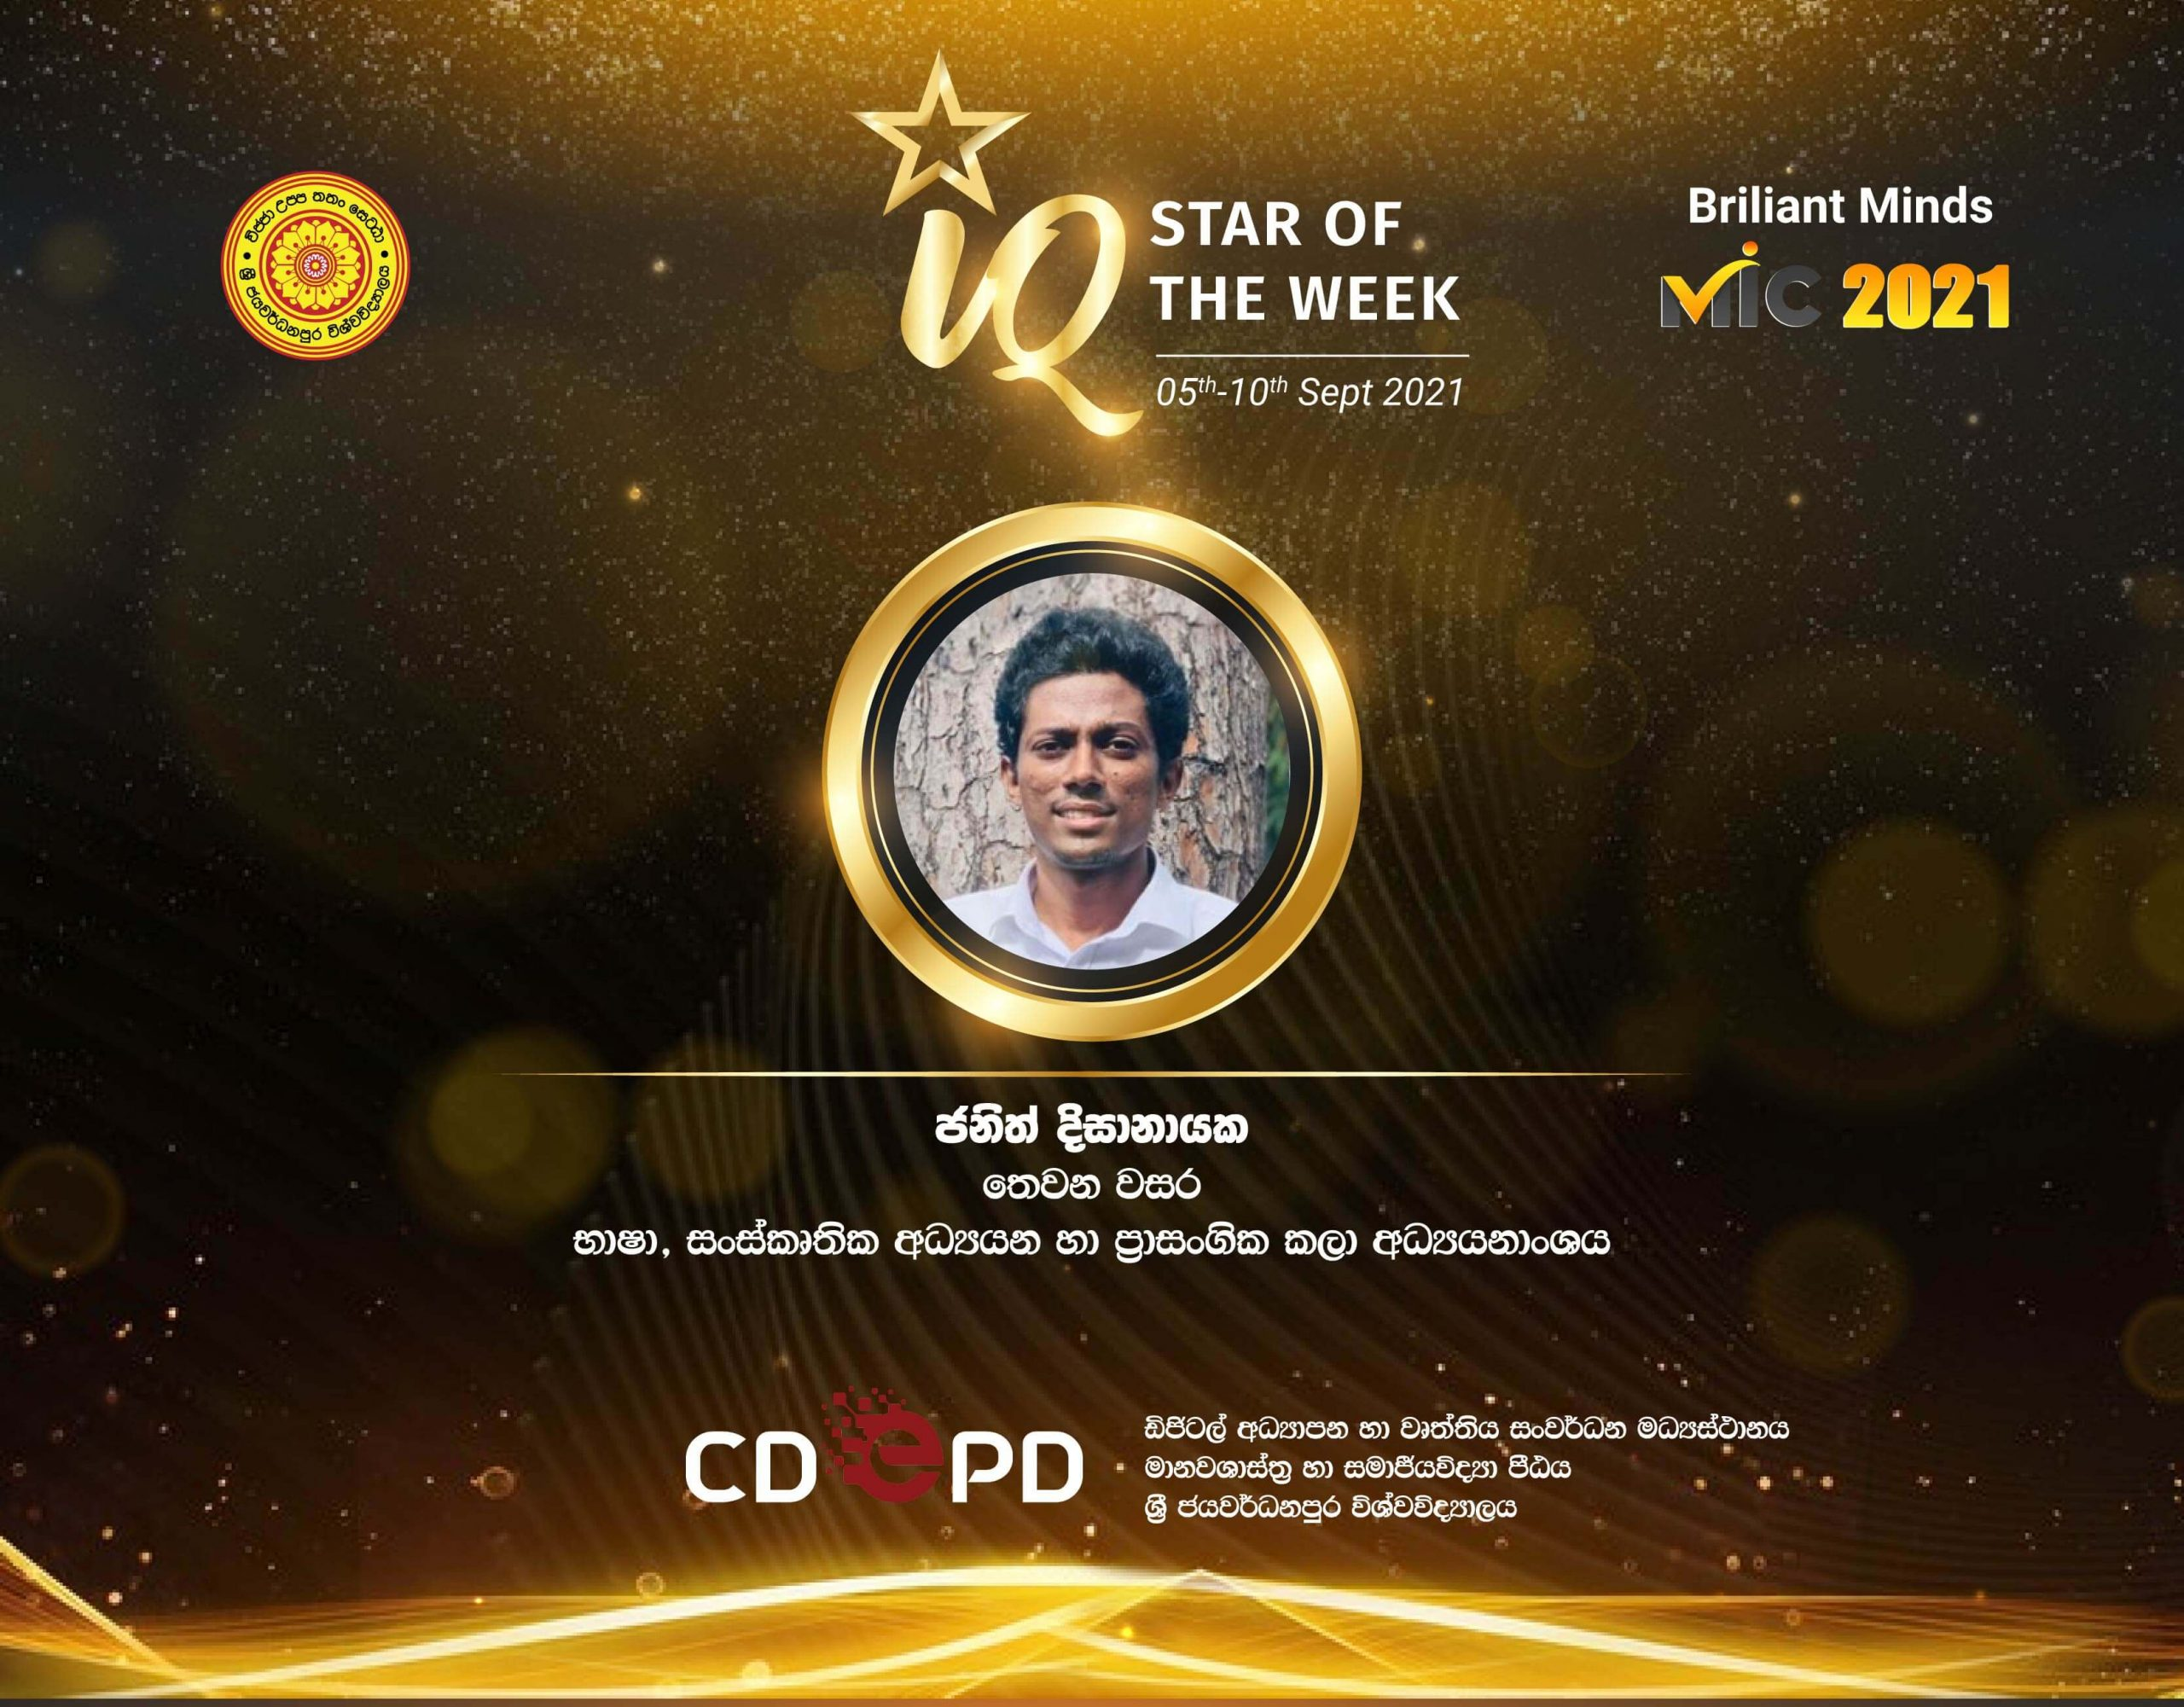 IQ Star of the Week of 05th - 10th Sept 2021